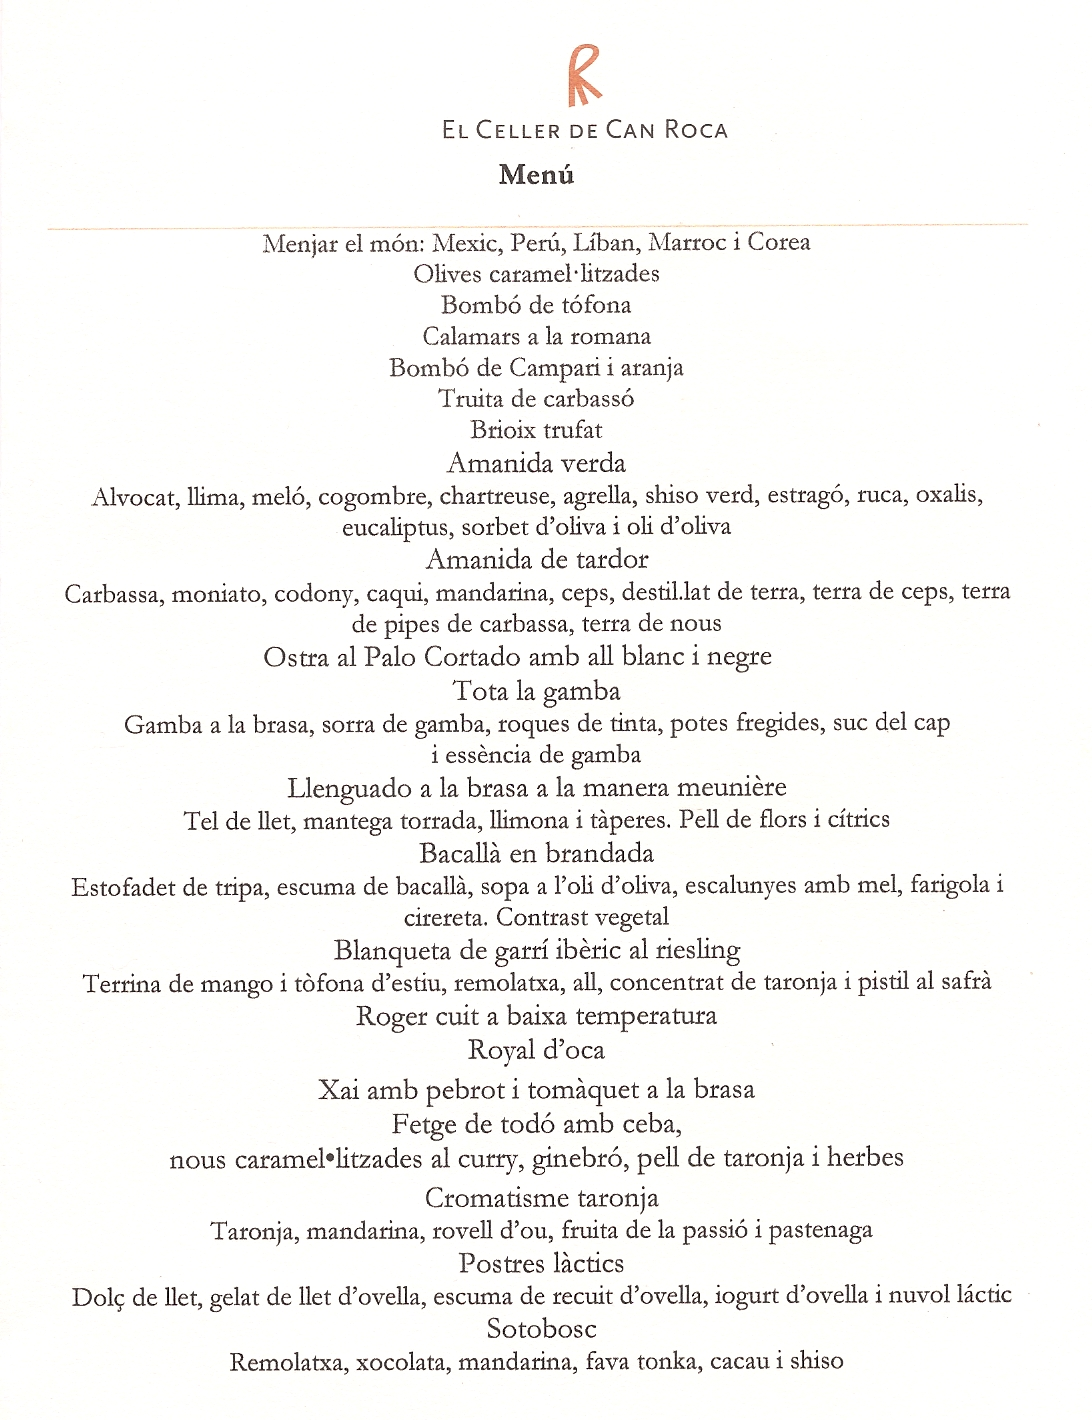 Restaurante El Celler de Can Roca can roca menu